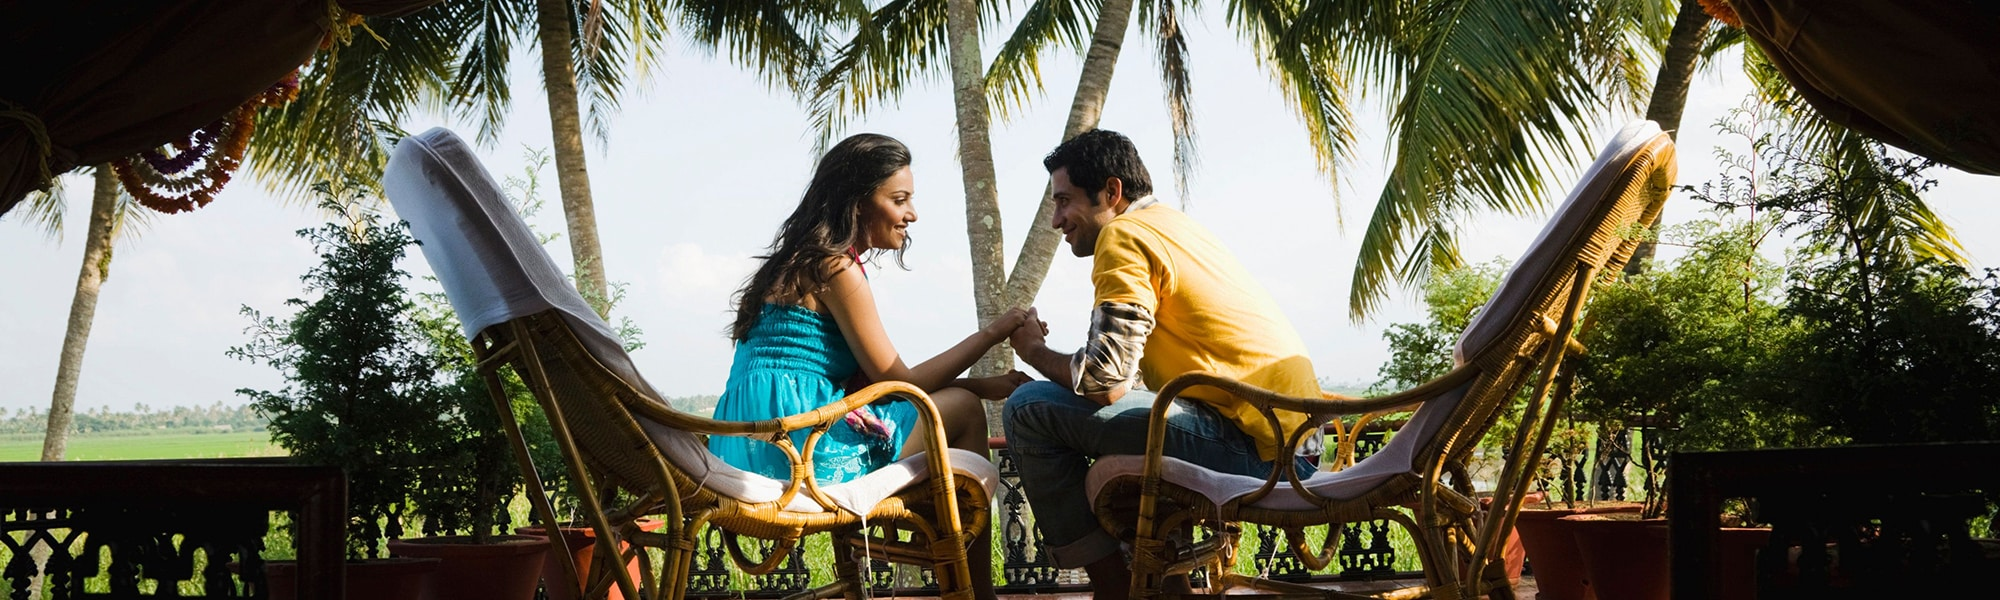 Kerala Romantic & Honeymoon Tour Packages